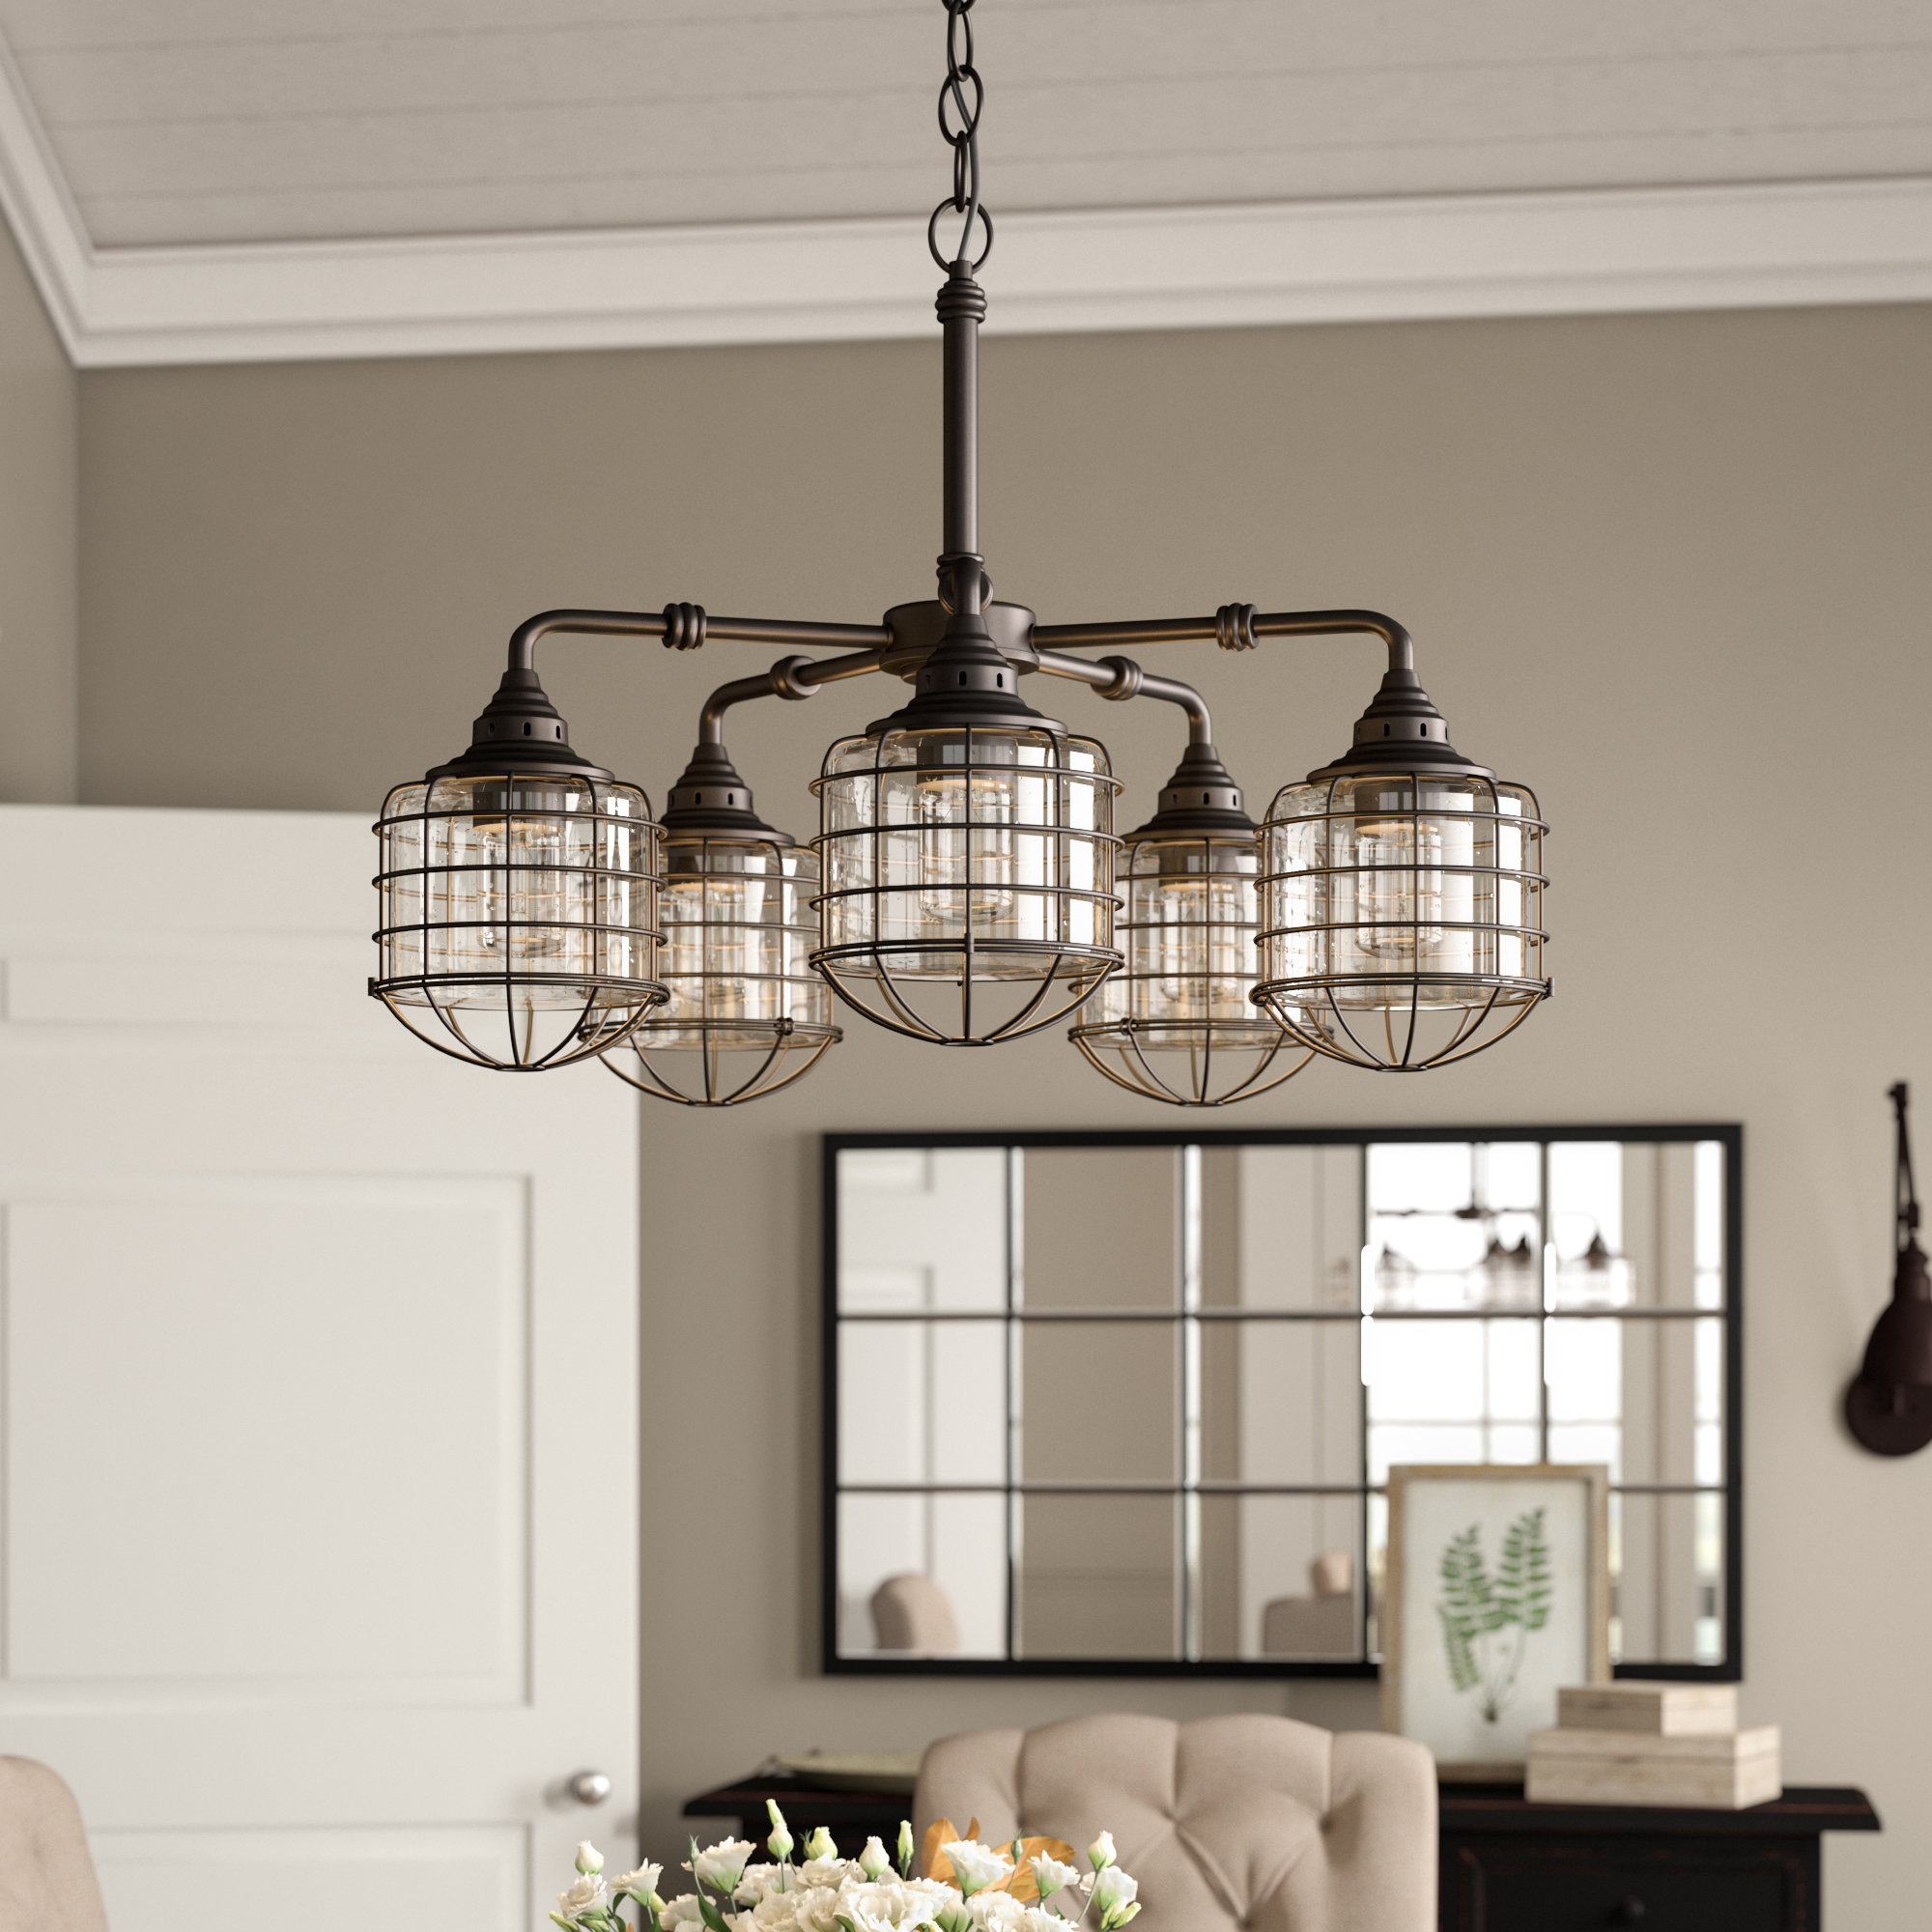 Roberts 5 Light Shaded Chandelier Throughout Popular Benedetto 5 Light Crystal Chandeliers (View 15 of 20)